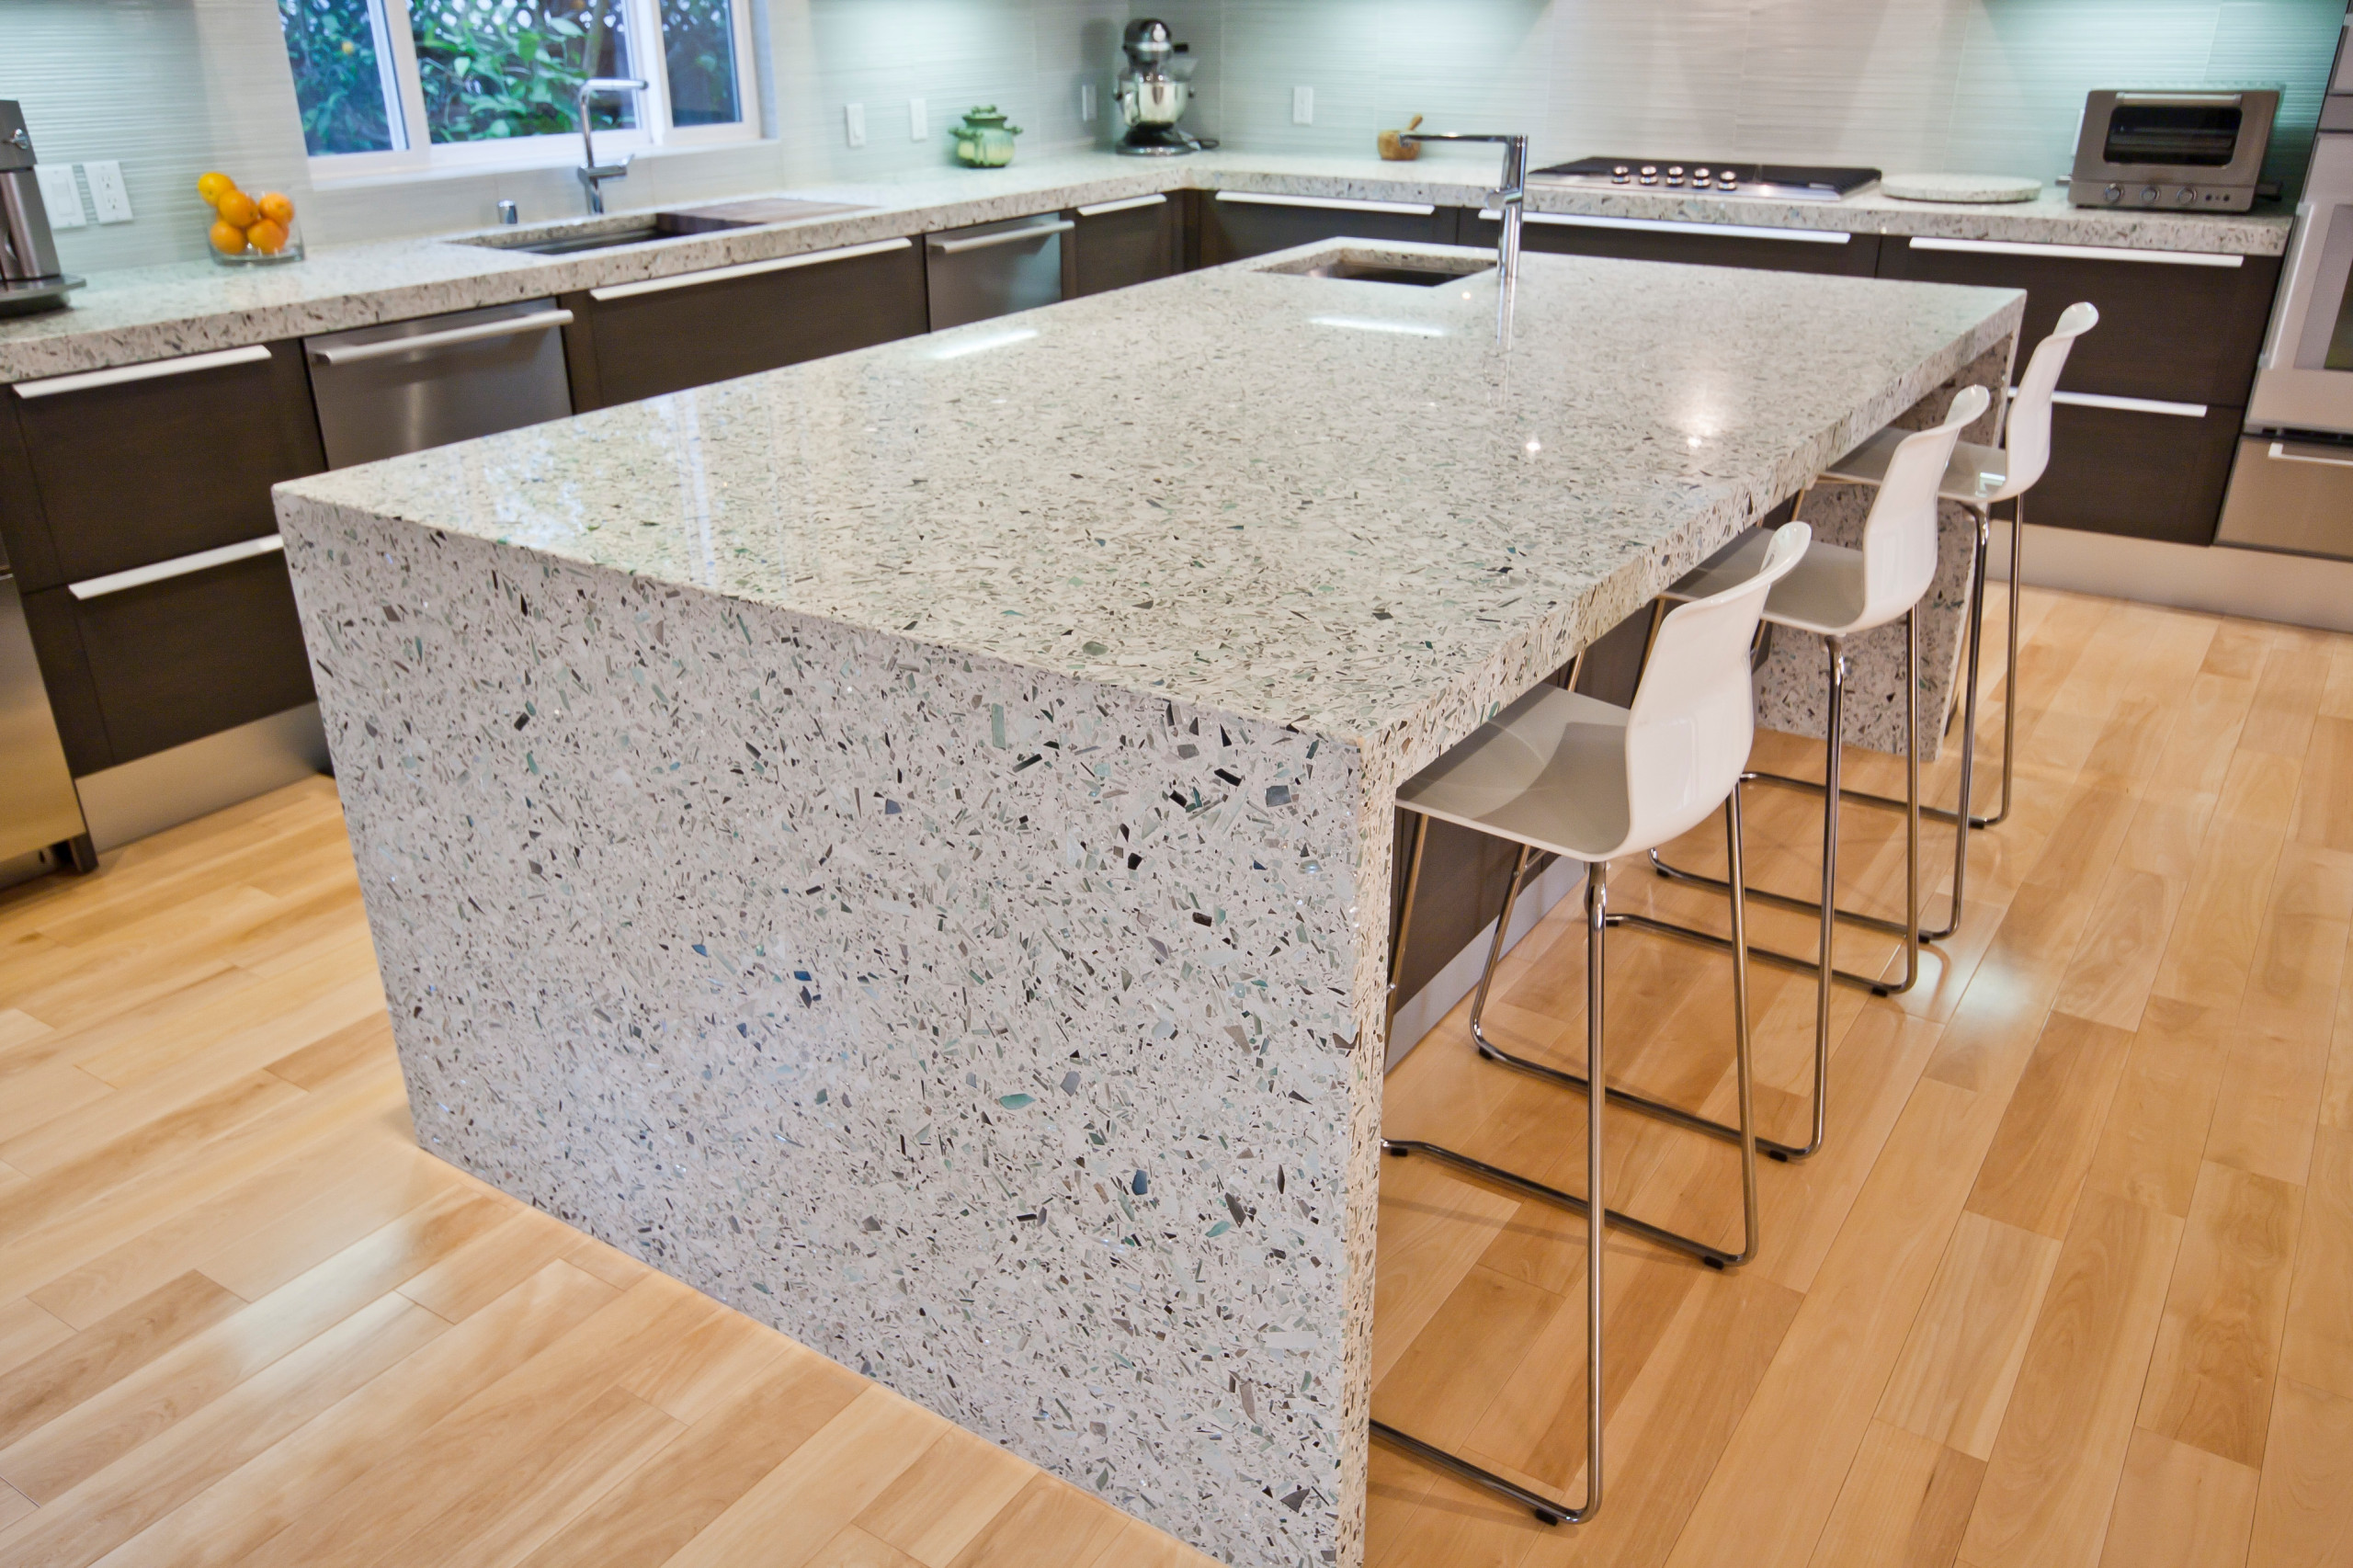 75 Beautiful Contemporary Kitchen With Recycled Glass Countertops Pictures Ideas February 2021 Houzz